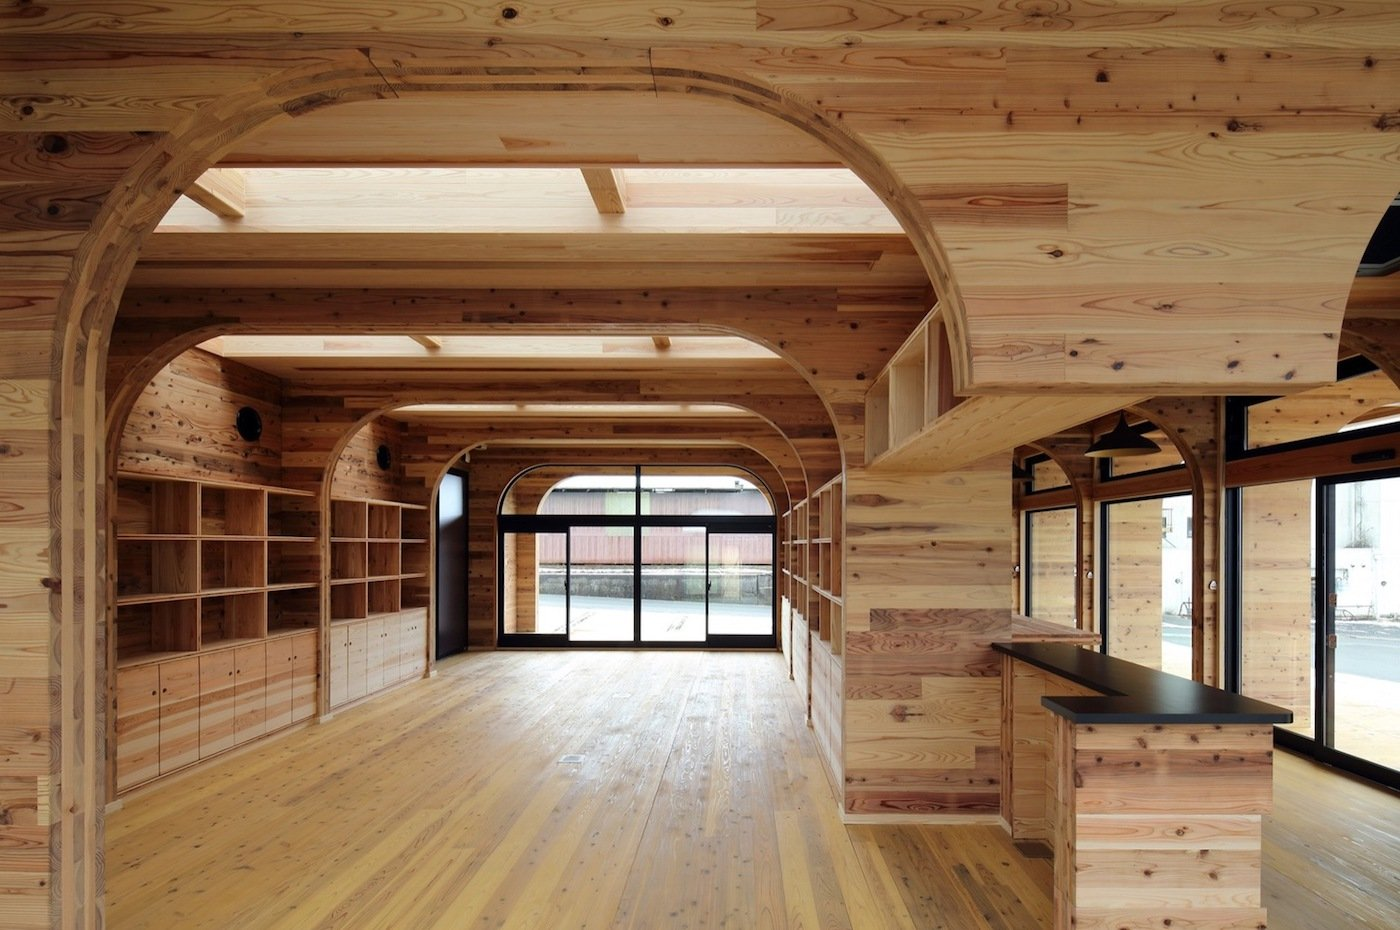 Vaulted ceiling cross laminated timber interior